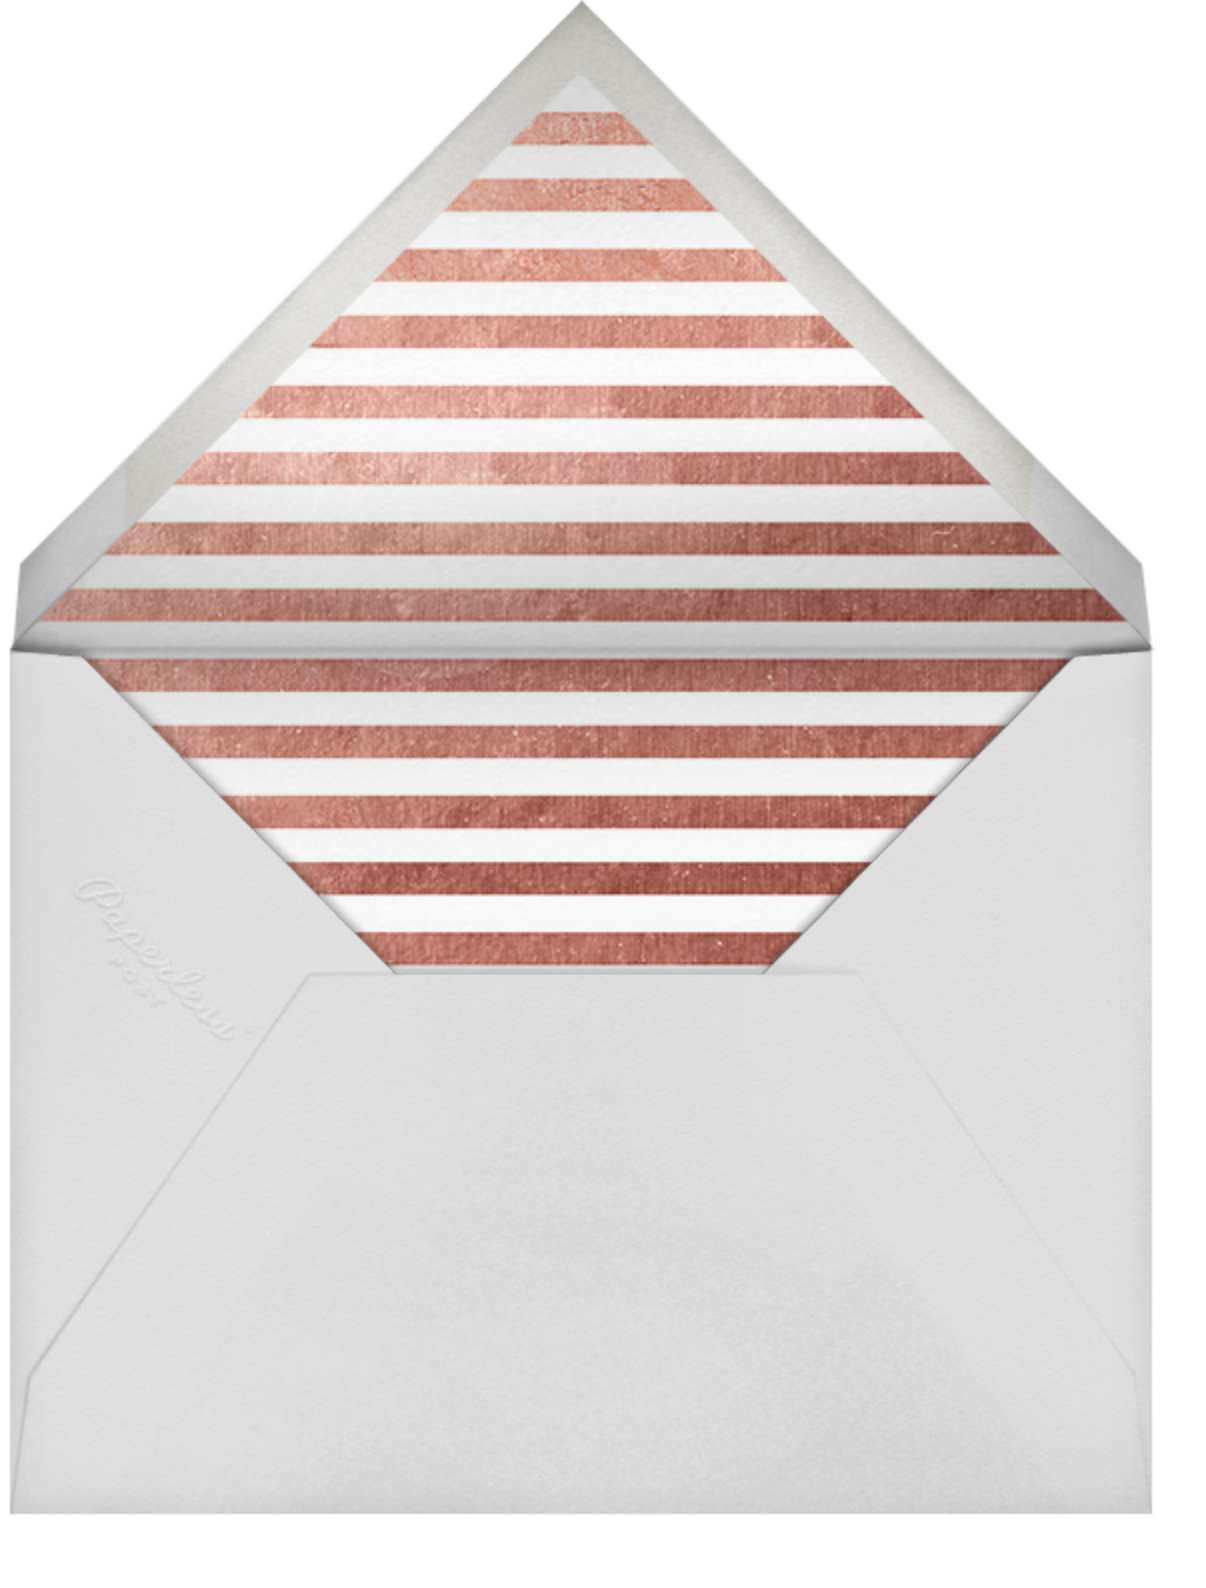 Confetti (Save the Date) - White/Rose Gold - kate spade new york - Party save the dates - envelope back